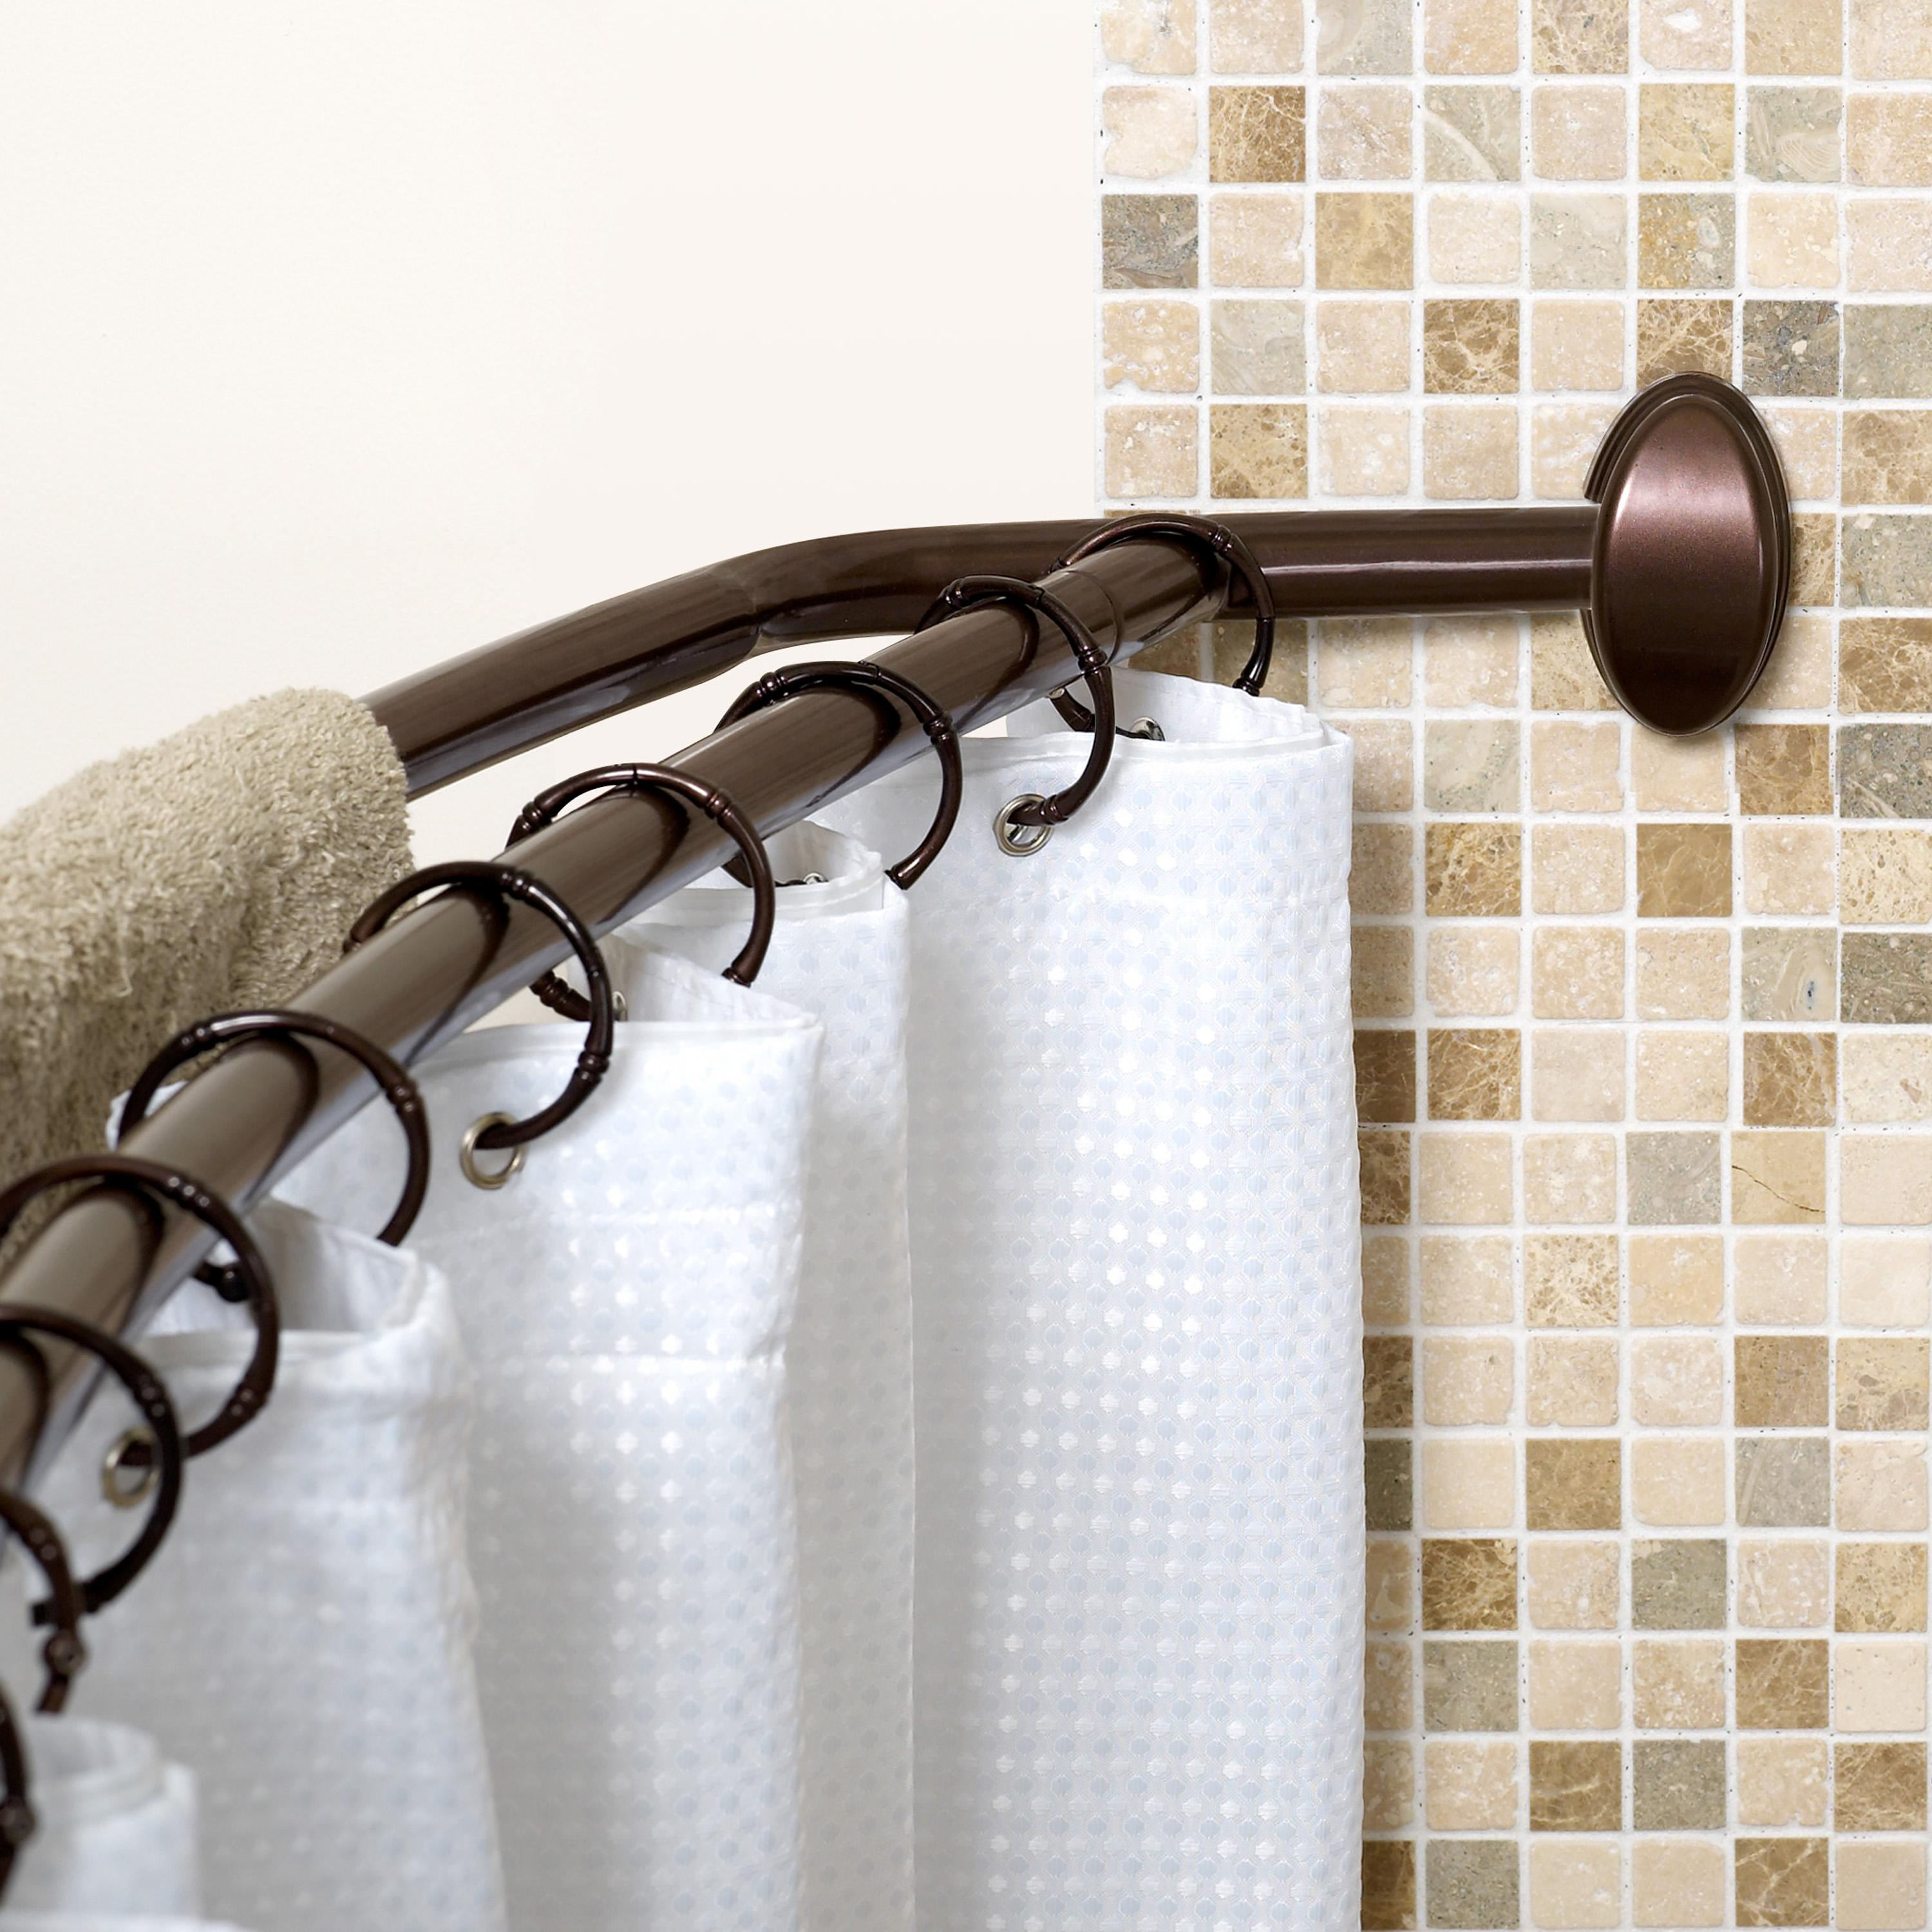 bathroom curved ideas your within shower rail design curtain house rod creative